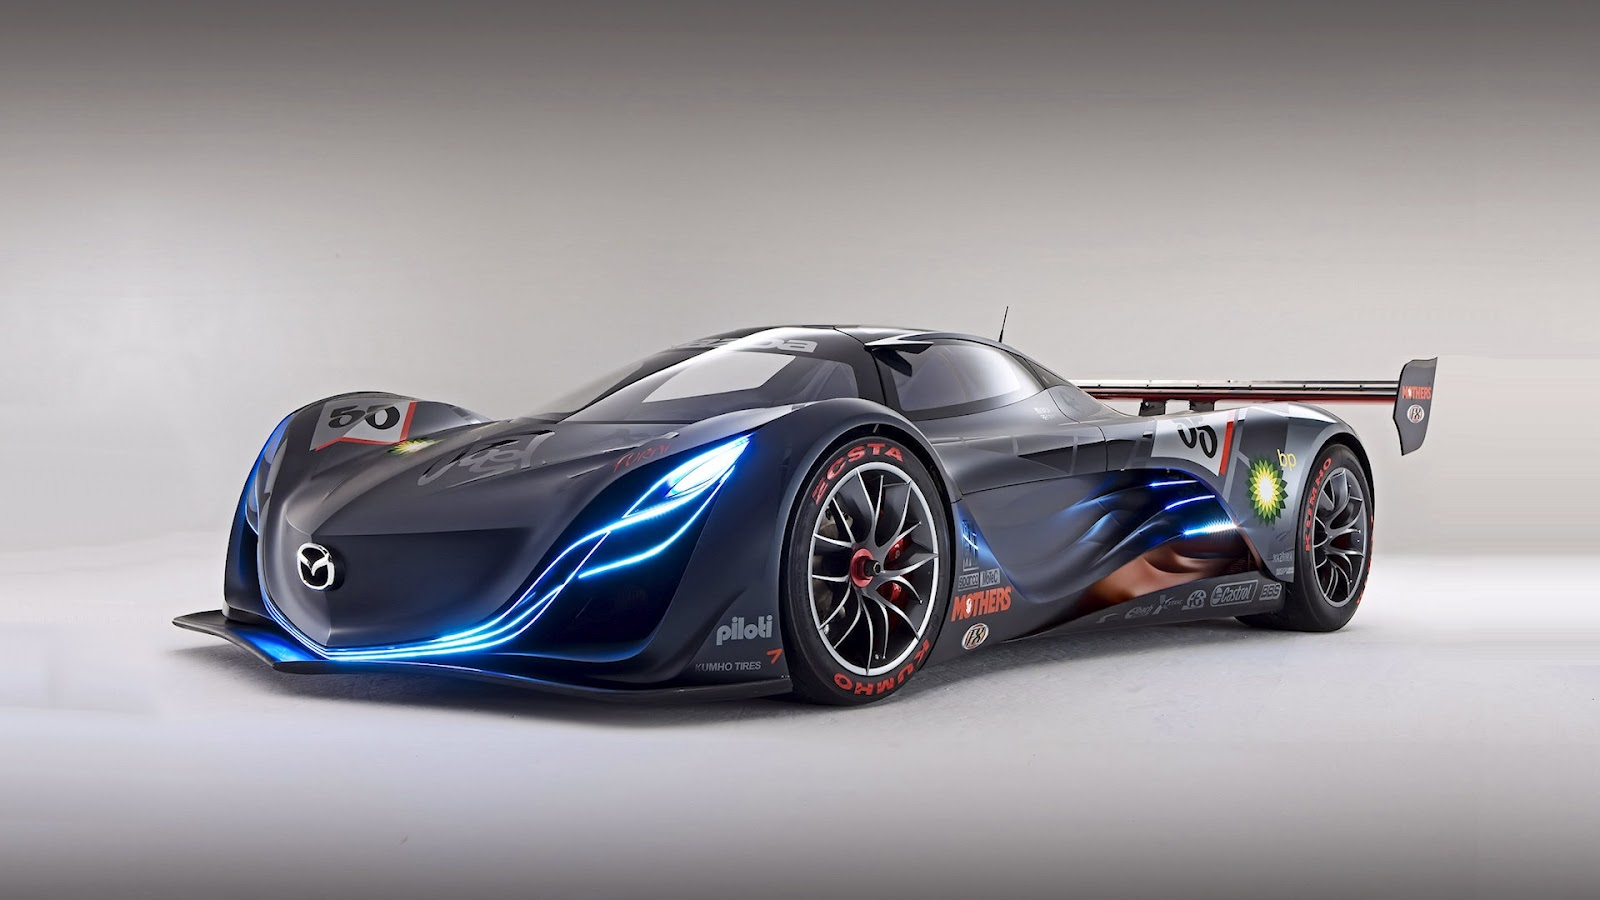 free cars hd mazda furai hd wallpapers. Black Bedroom Furniture Sets. Home Design Ideas